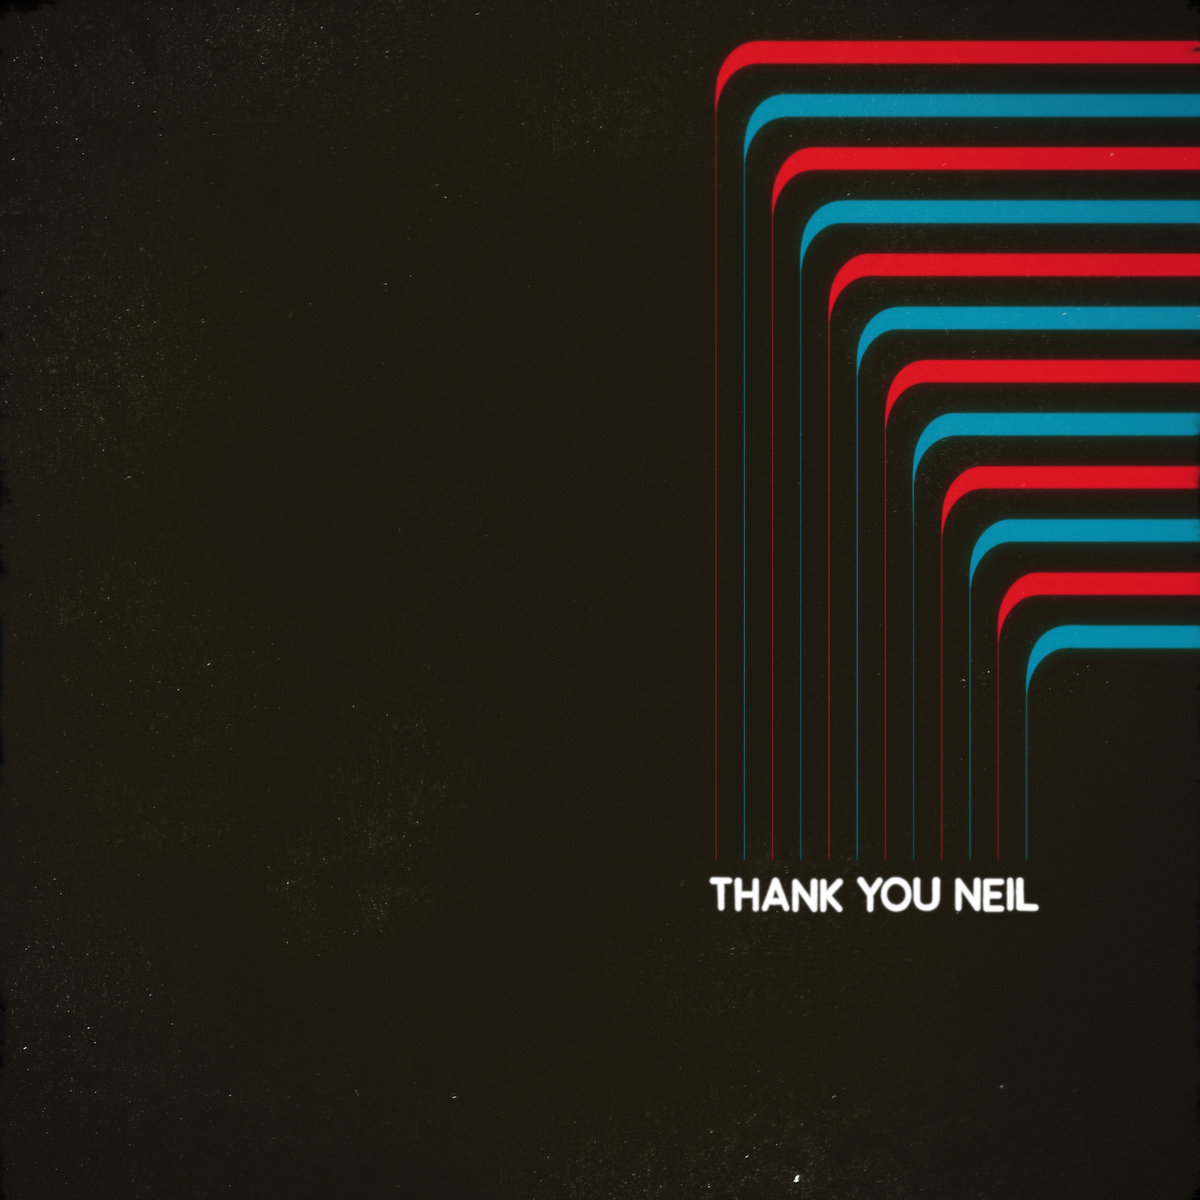 Dumbo Gets Mad - Thank You Neil @ 'Thank You Neil' album (alternative, los angeles)